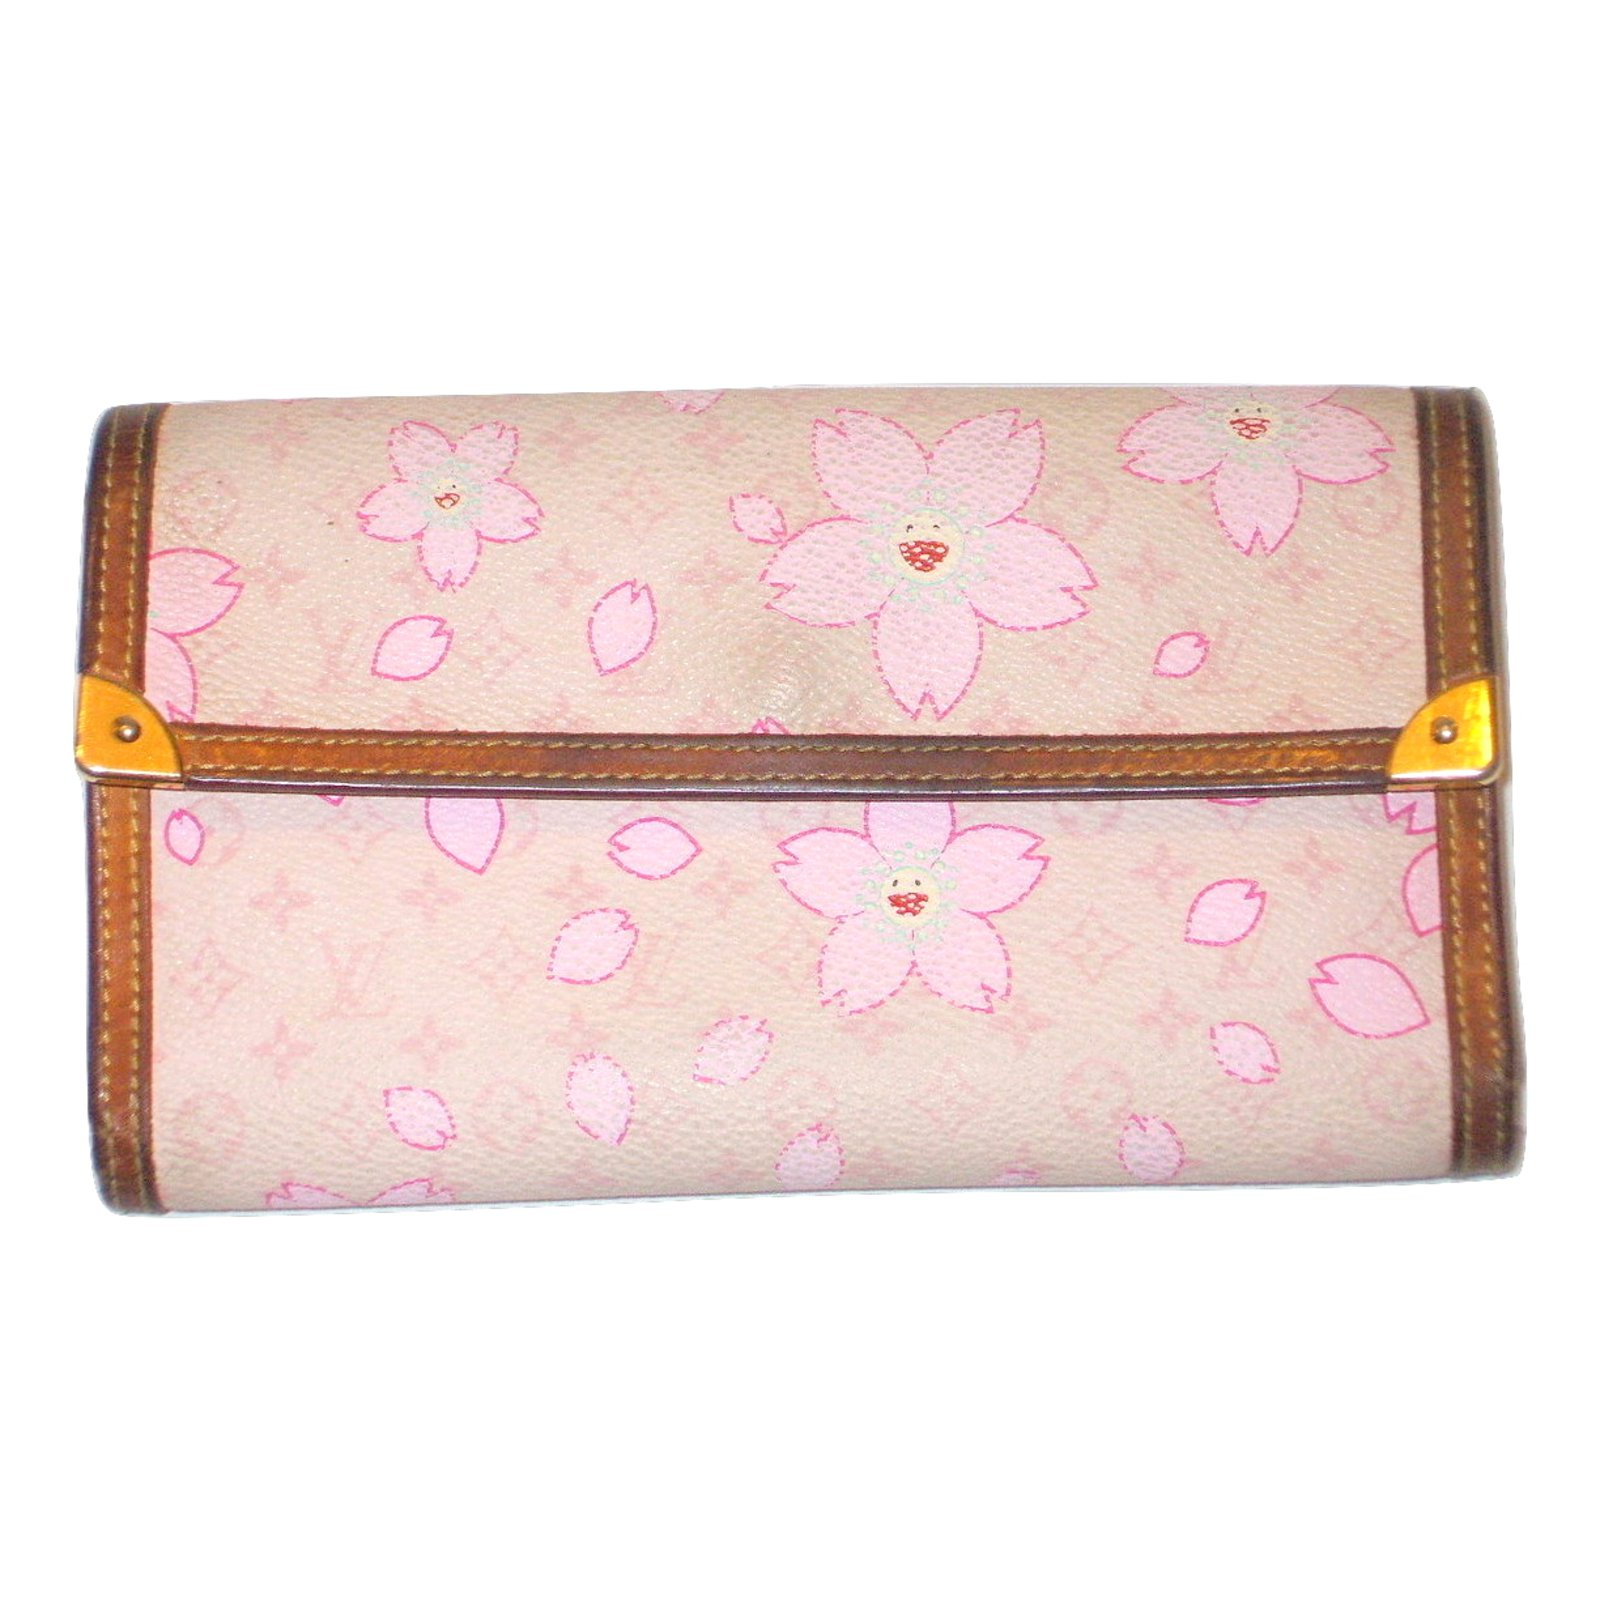 40330f0ec2fc Louis Vuitton Cherry Blossom Takashi Murakami Wallets Synthetic Pink. Louis  Vuitton Limited Edition Cherry Blossom Monogram Canvas Sac Retro Bag